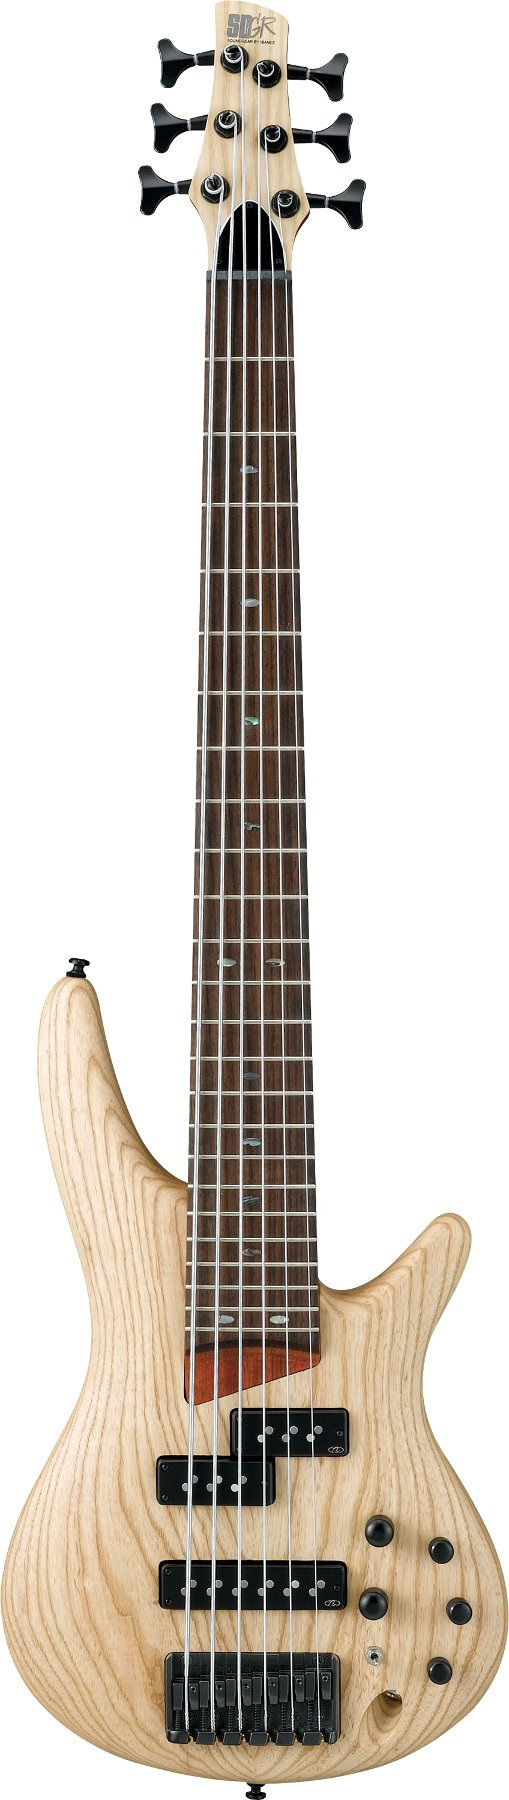 6-String Electric Bass